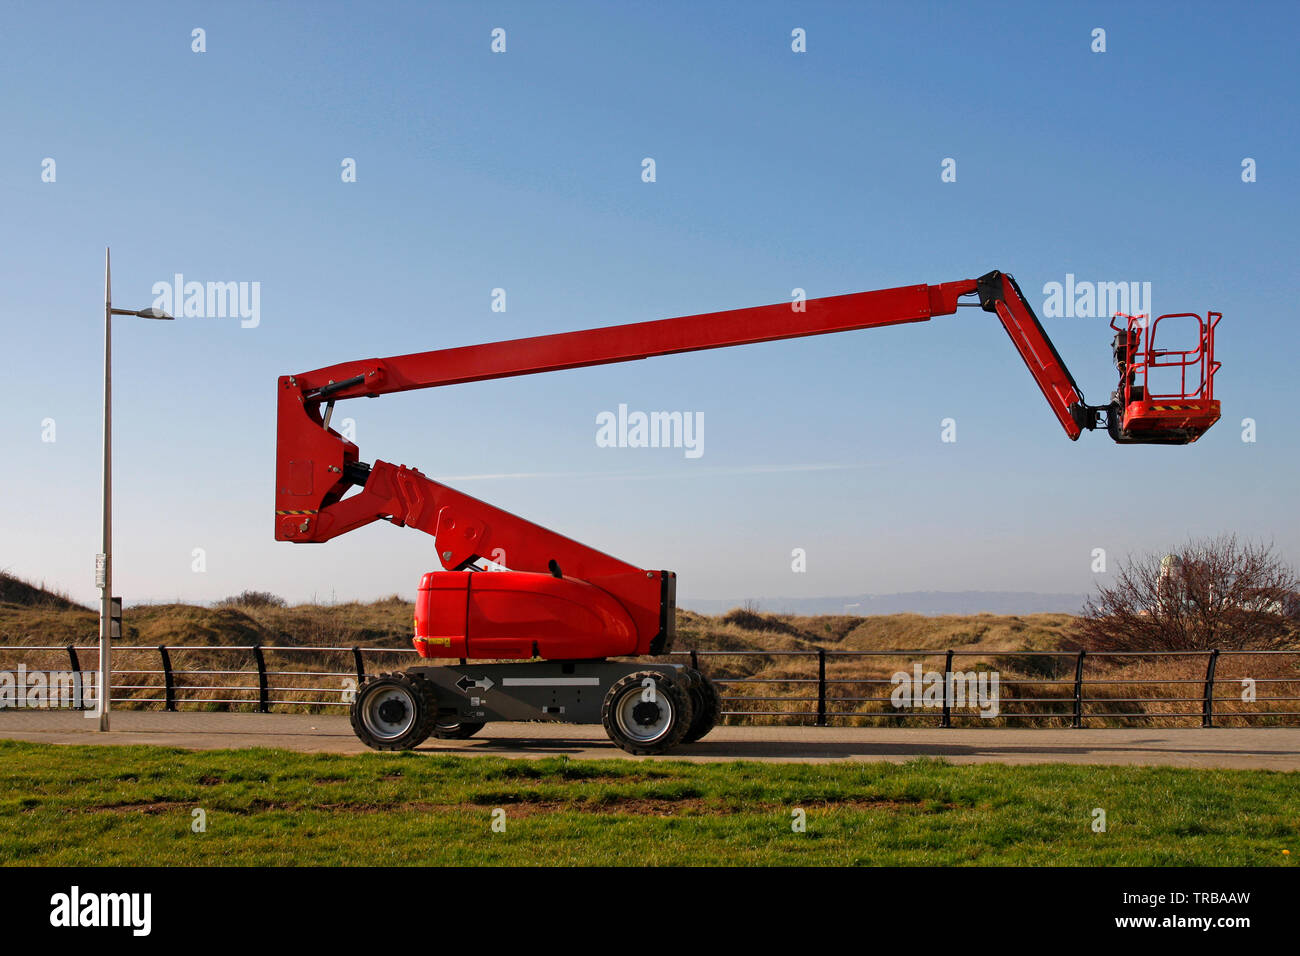 Orange cherry picker, side view against a blue sky - Stock Image